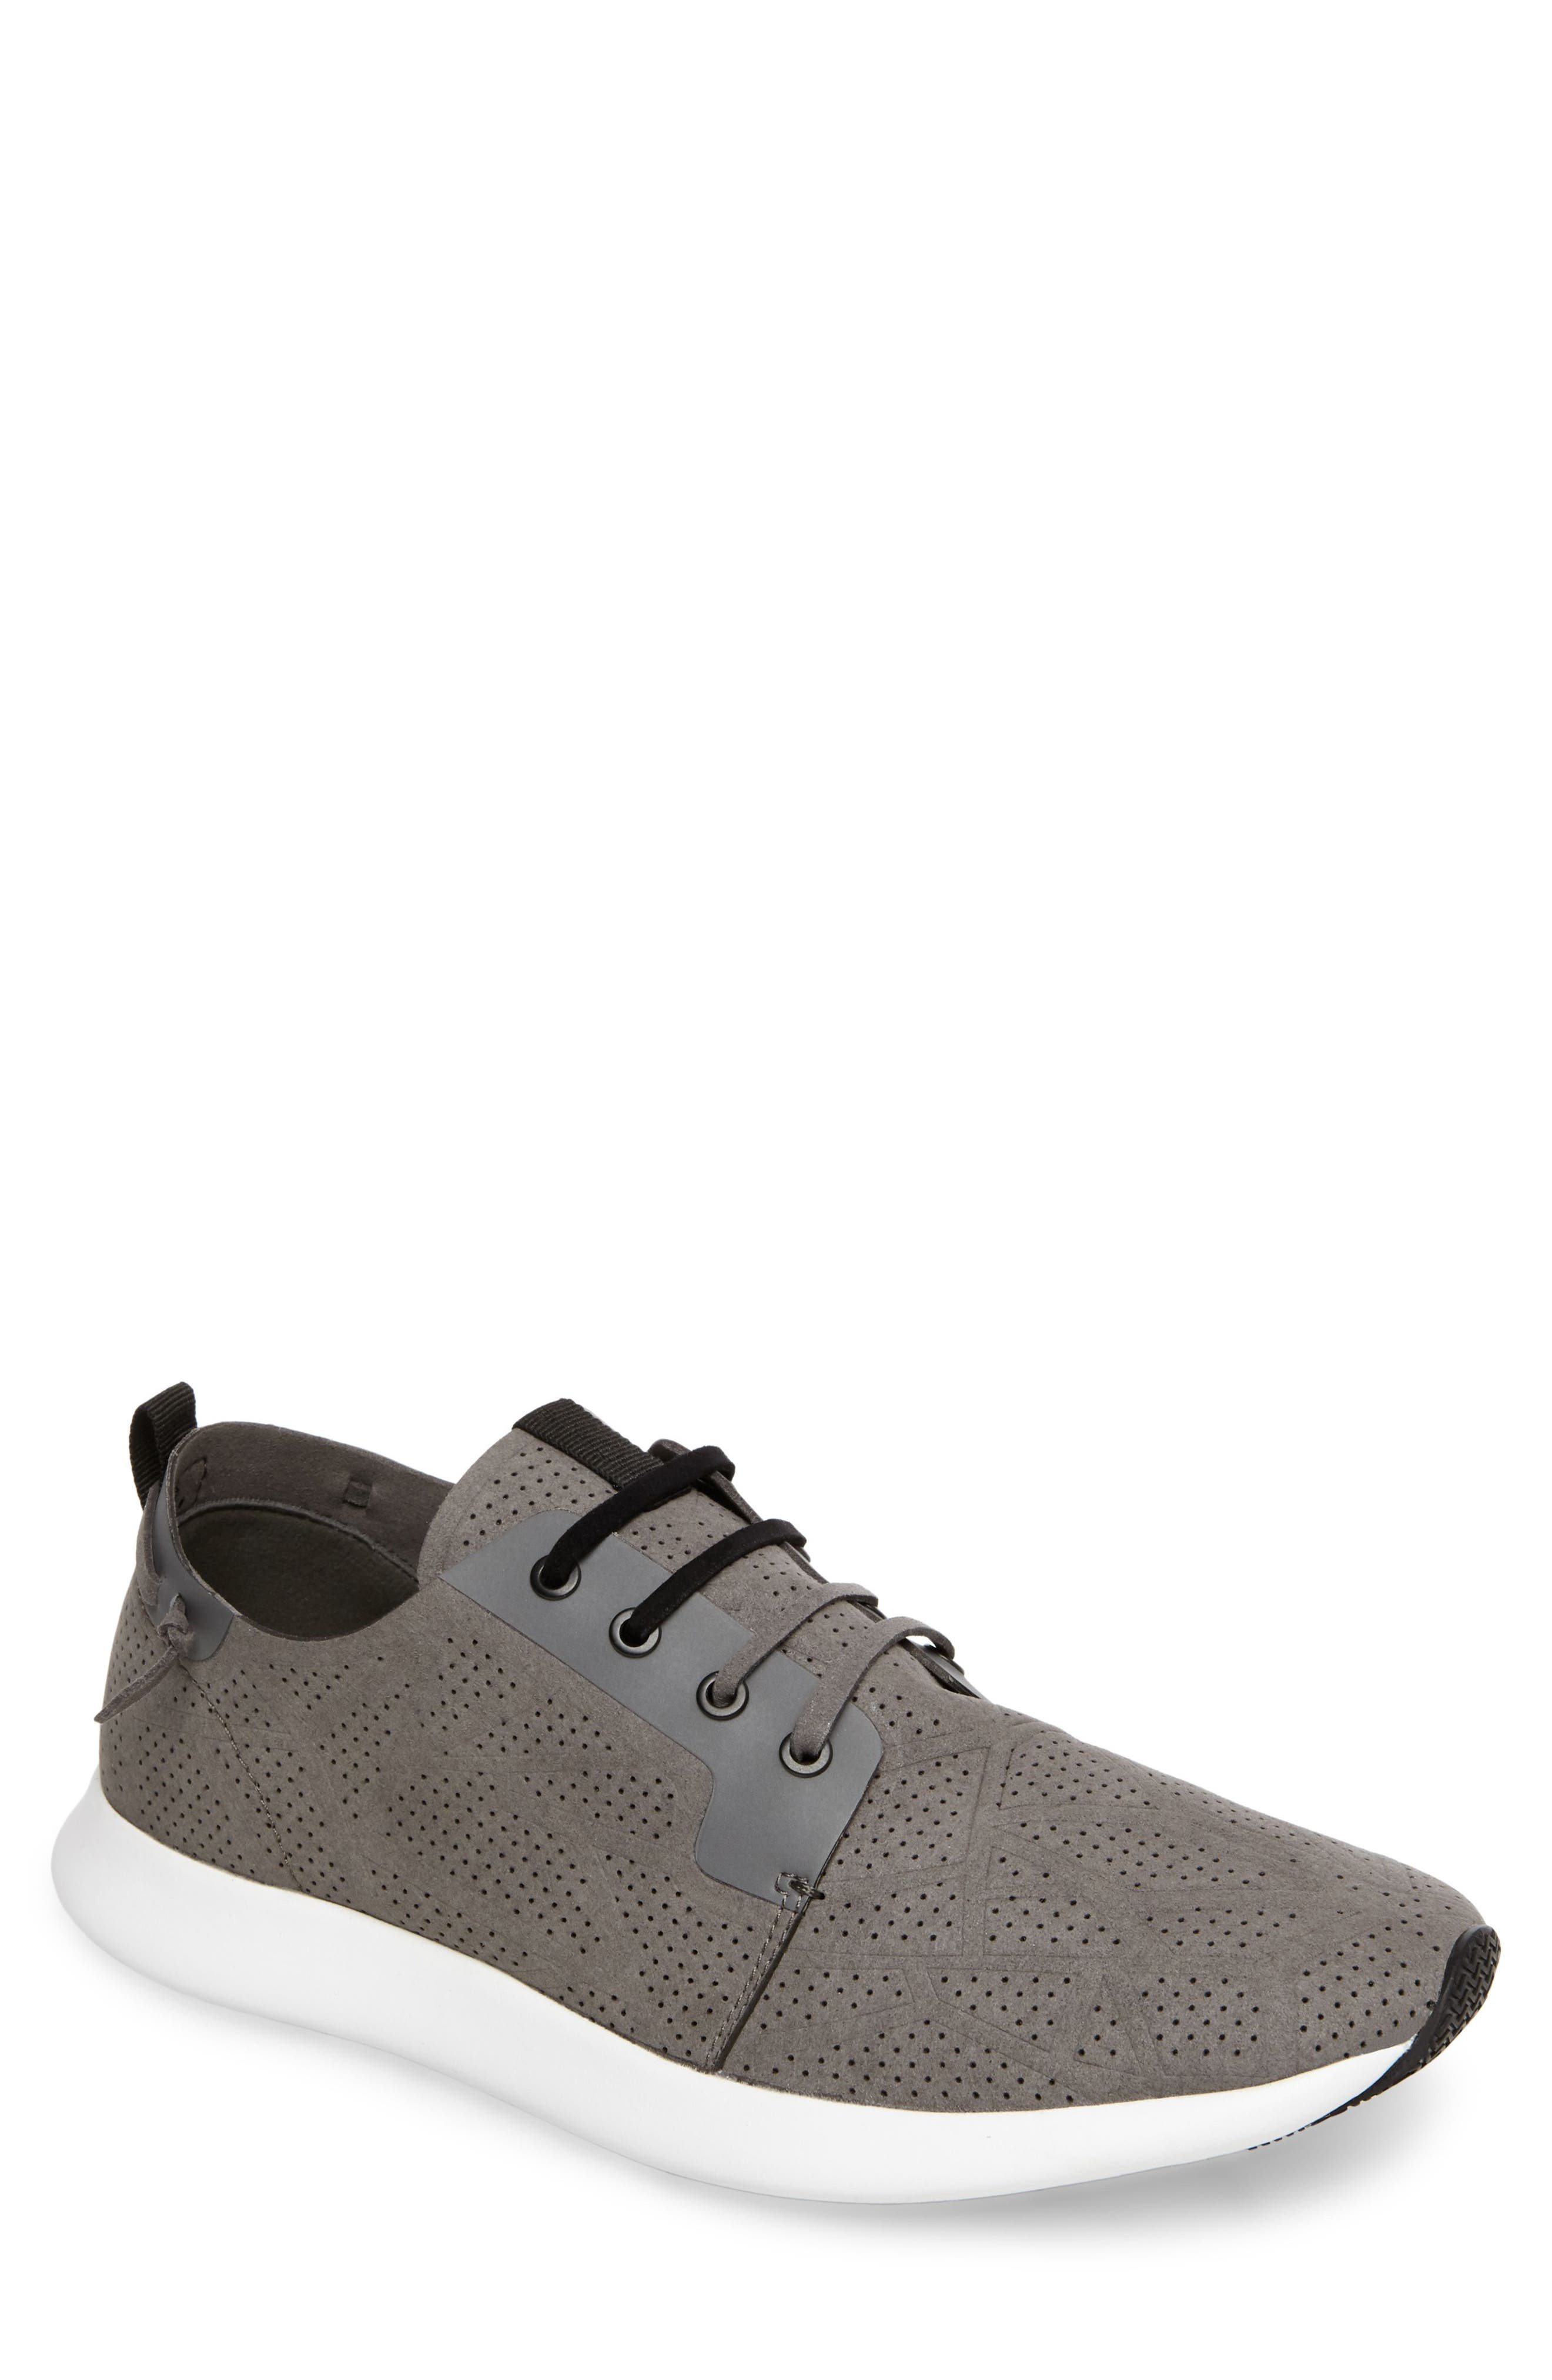 Batali Perforated Sneaker,                         Main,                         color, 055